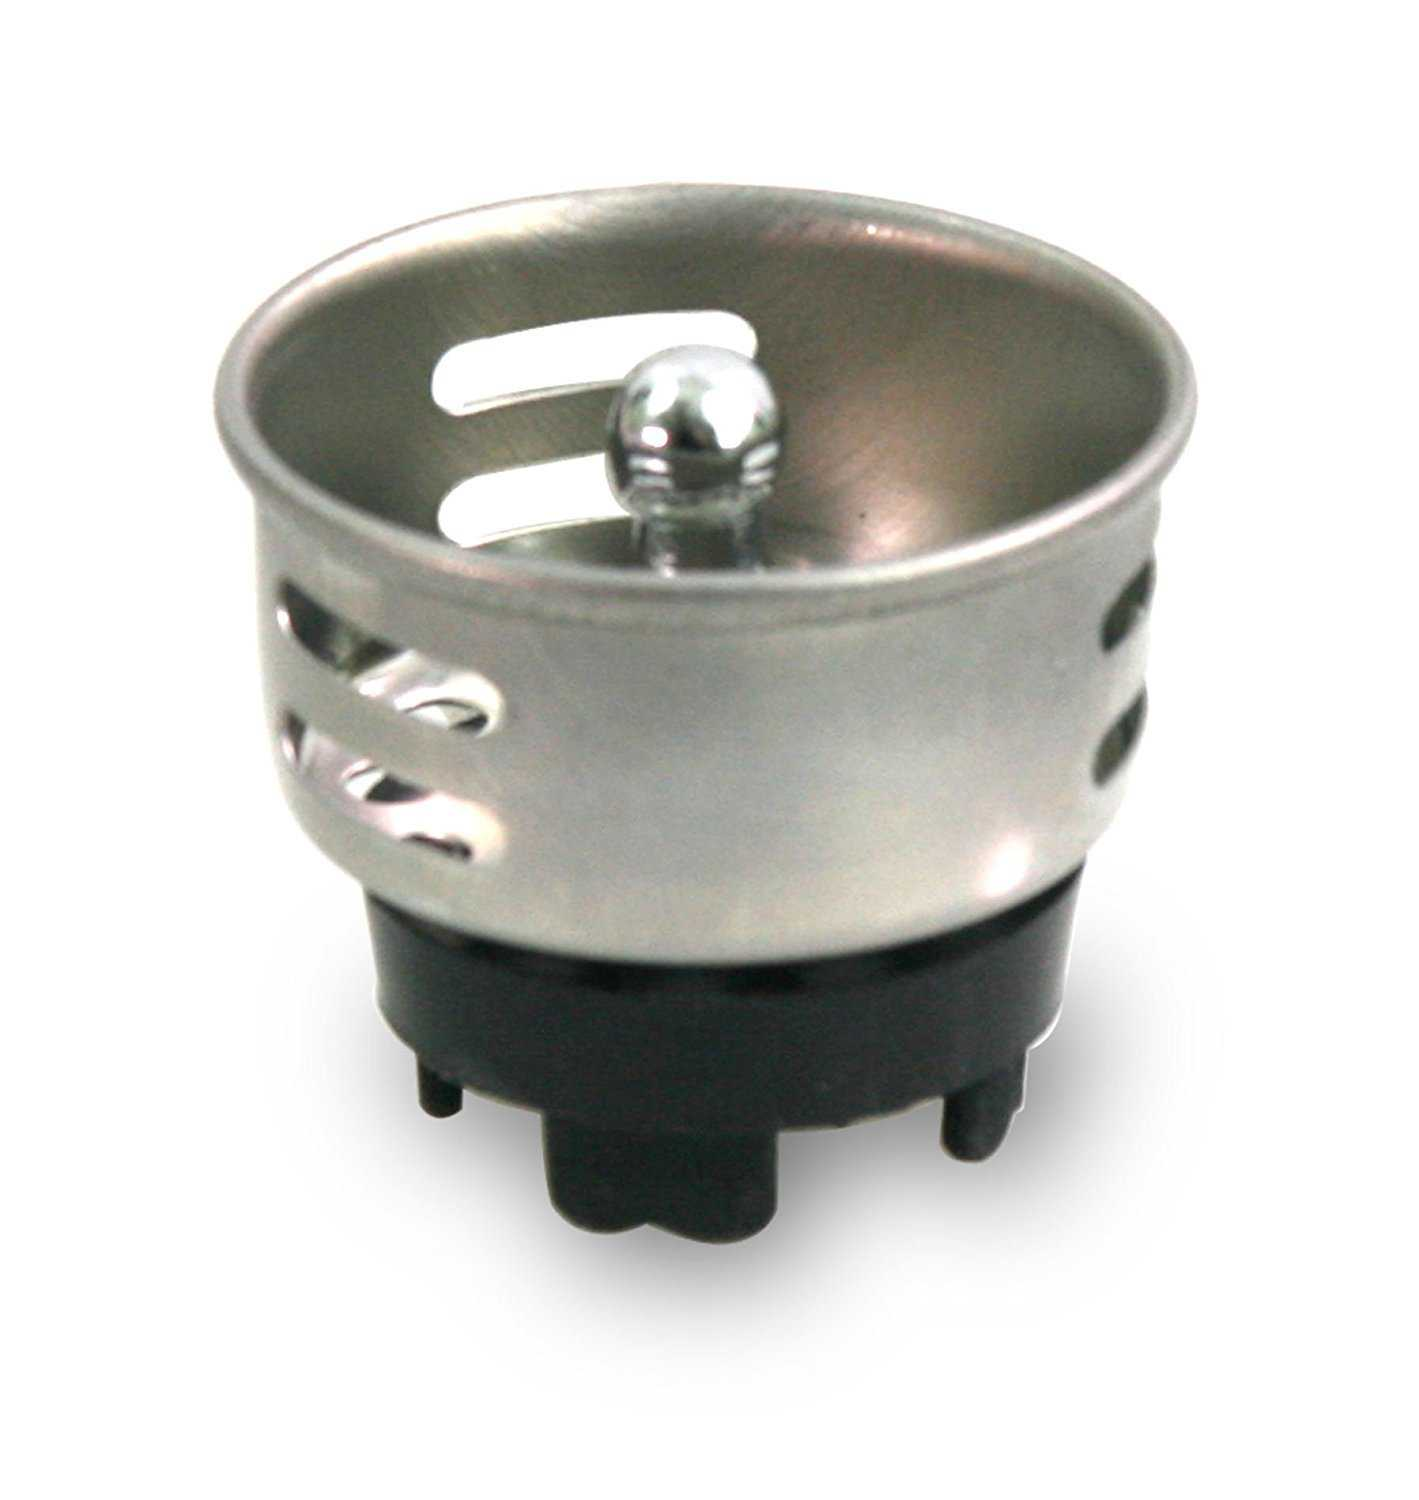 Everflow Stainless Steel Junior Duo Strainer / Stopper (1.5 inch) - Replacement Basket for Bar and Prep Sinks Drains…